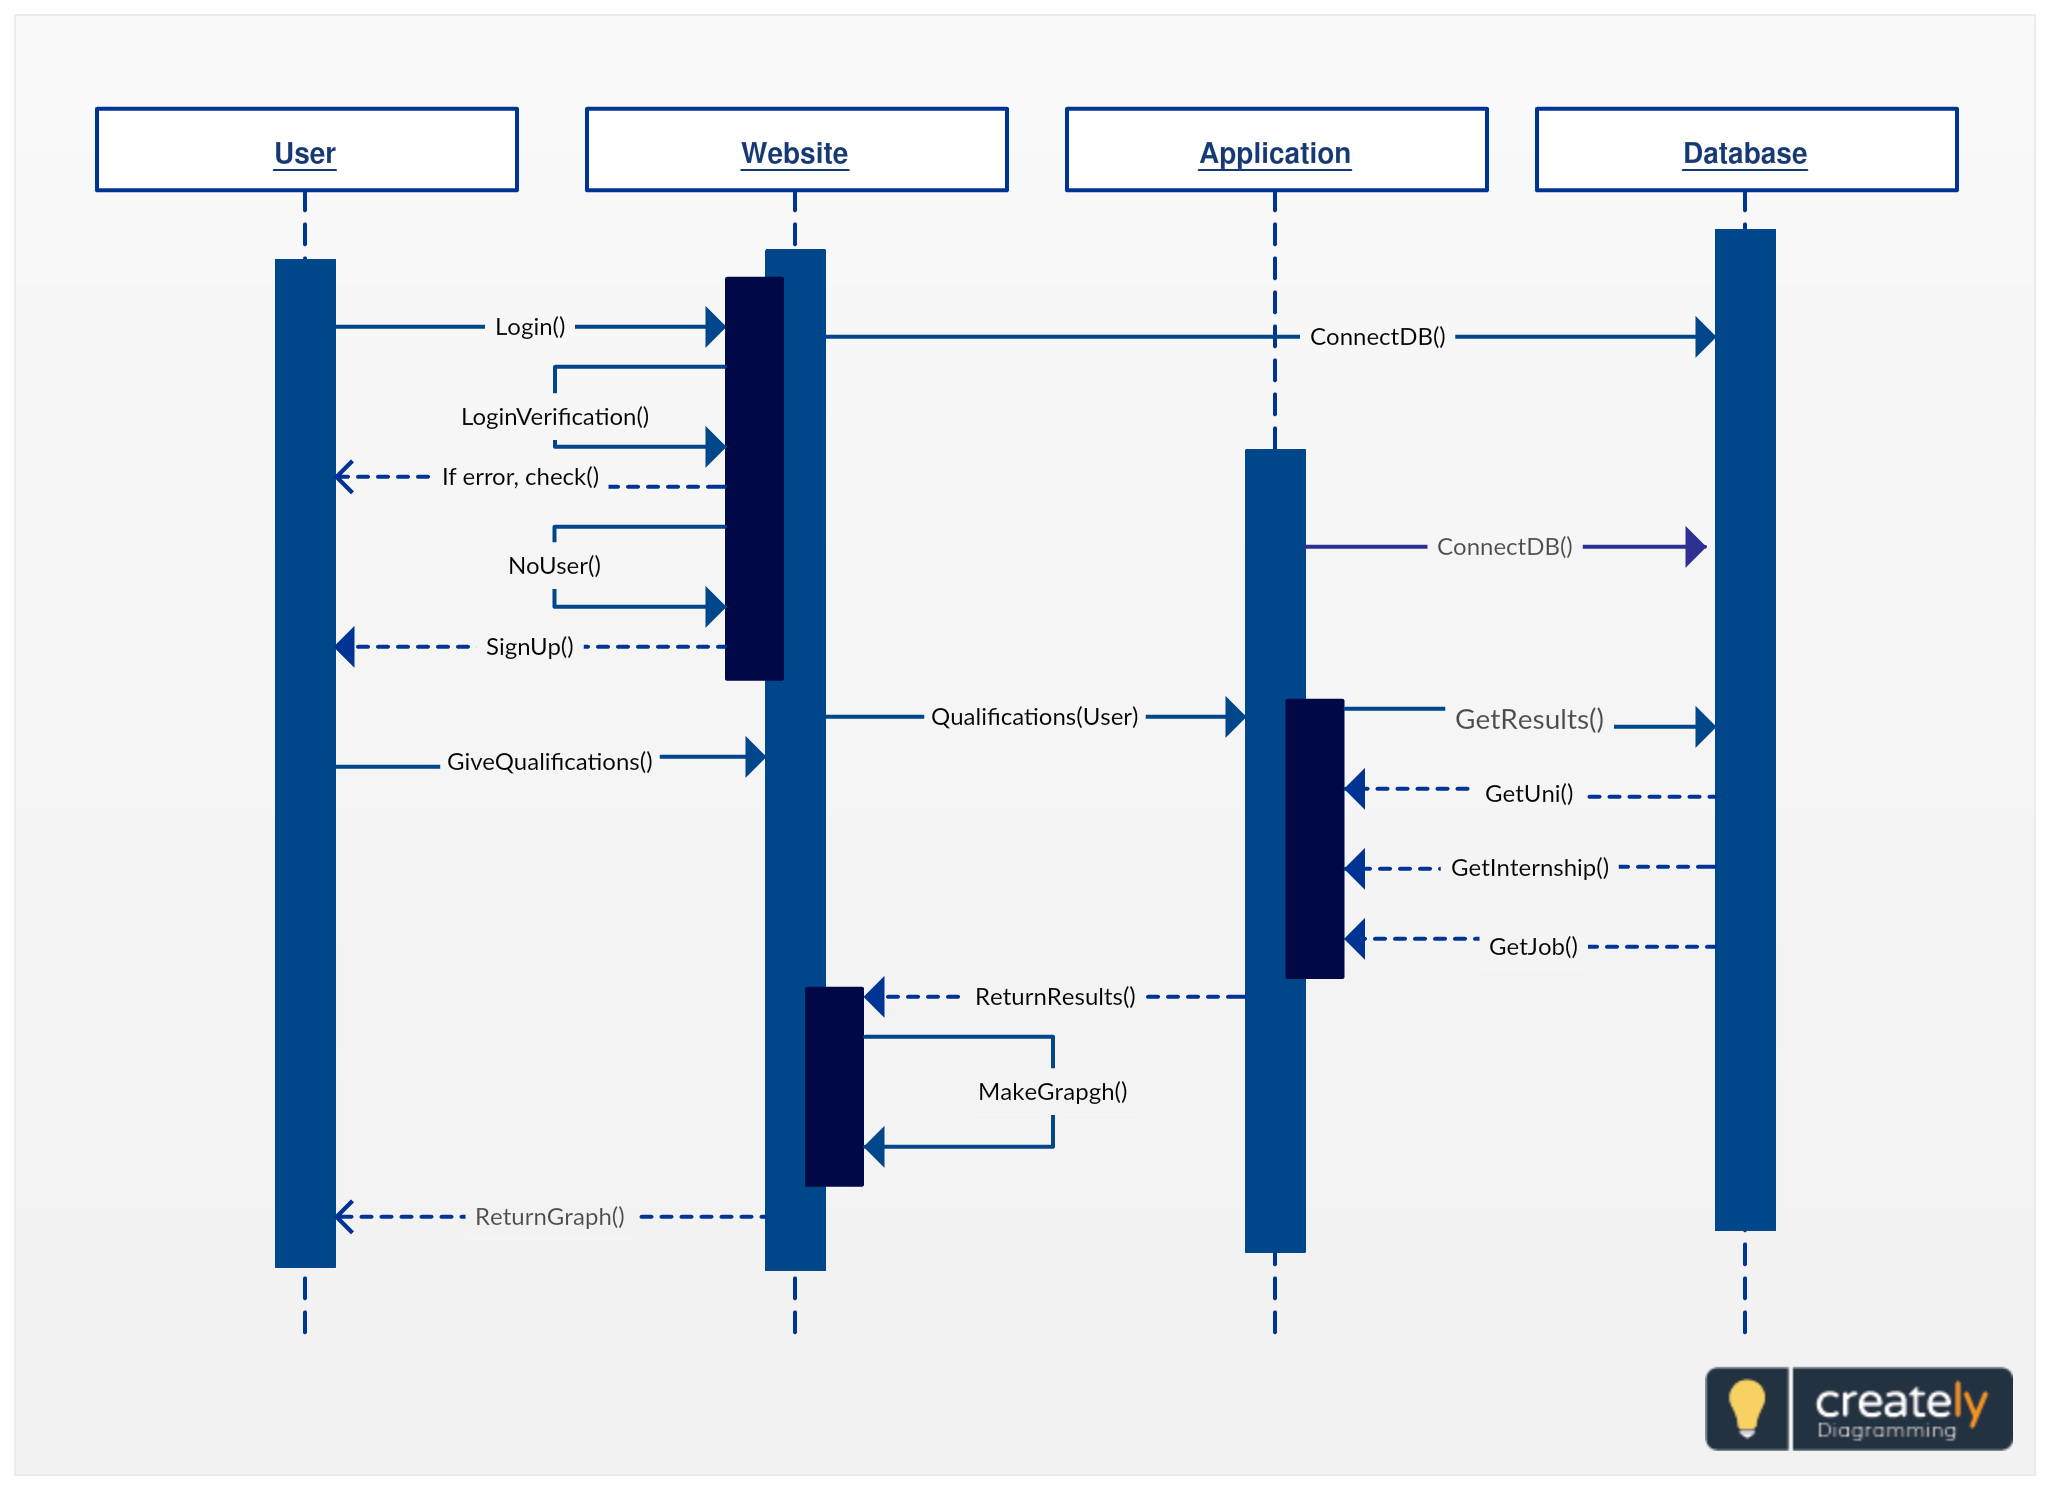 hight resolution of uml sequence diagram for sky canoe sequence diagram shows the user interaction in the system to sign up click on the diagram to edit online and download